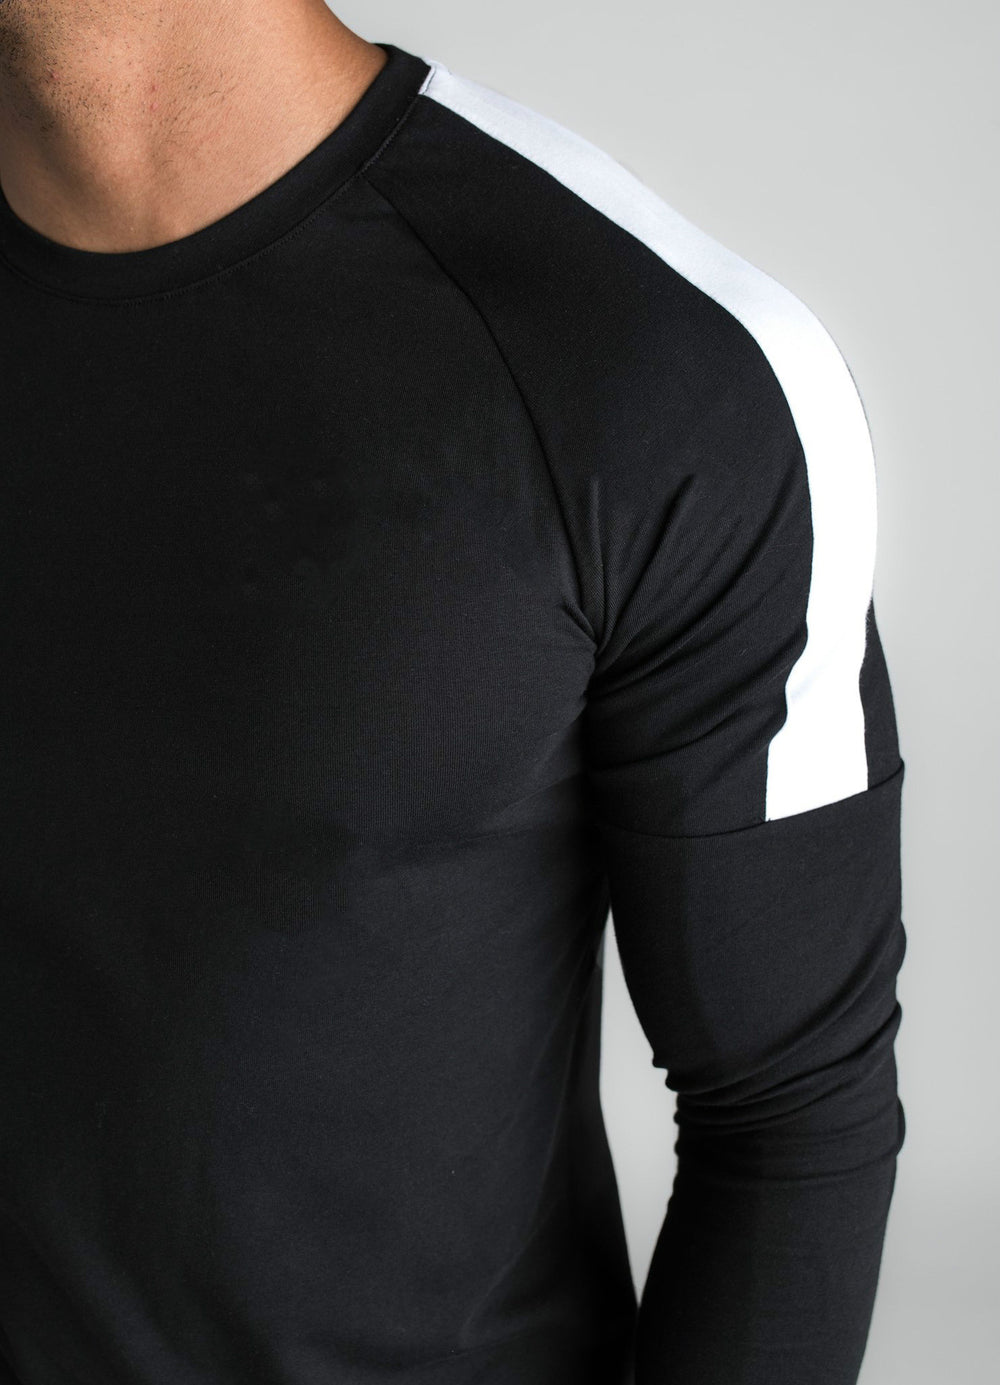 Autumn Men's Long-sleeved T-shirt Fashion Stitching Multi-color Sports Leisure T Shirt Men